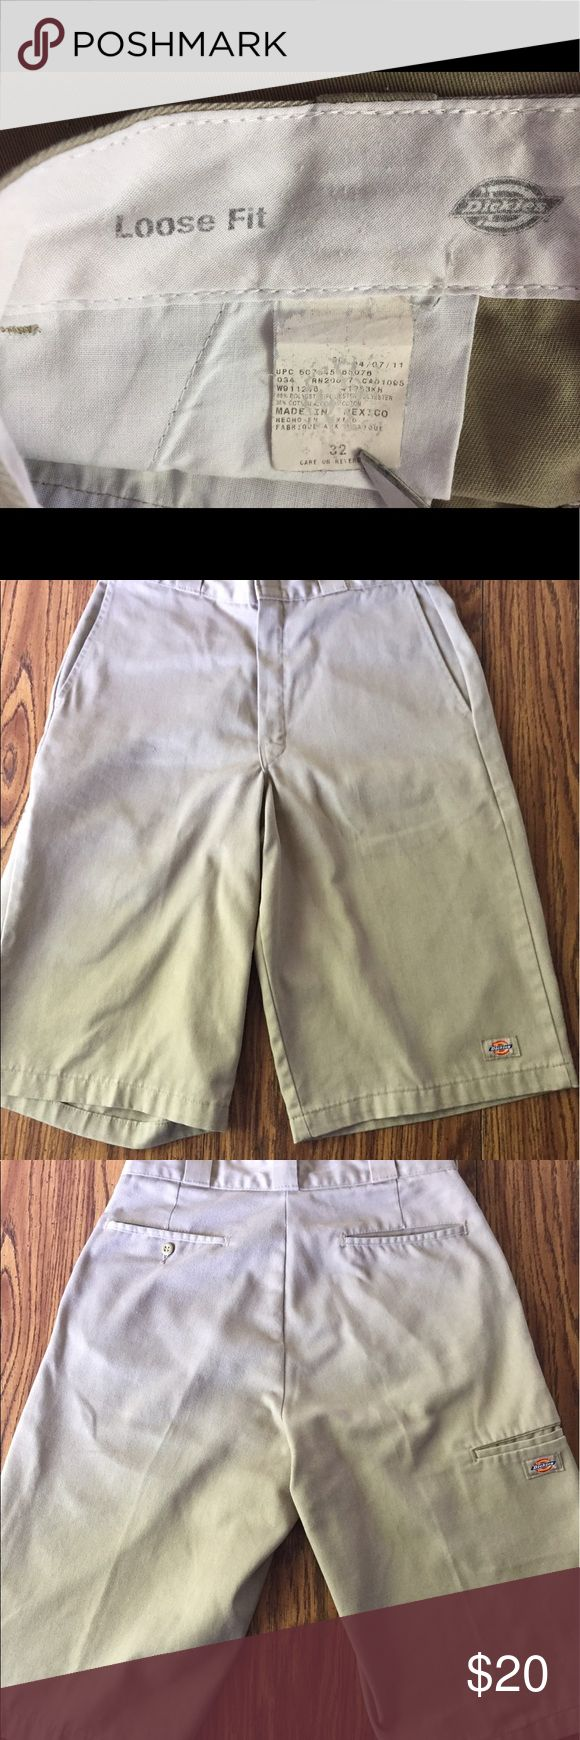 Dickies Men's Khaki Shorts Size 32 Loose Fit 65% polyester, 45% cotton; 1 small stain on outside of rear right pocket; gently worn; good used condition without tears Dickies Shorts Flat Front